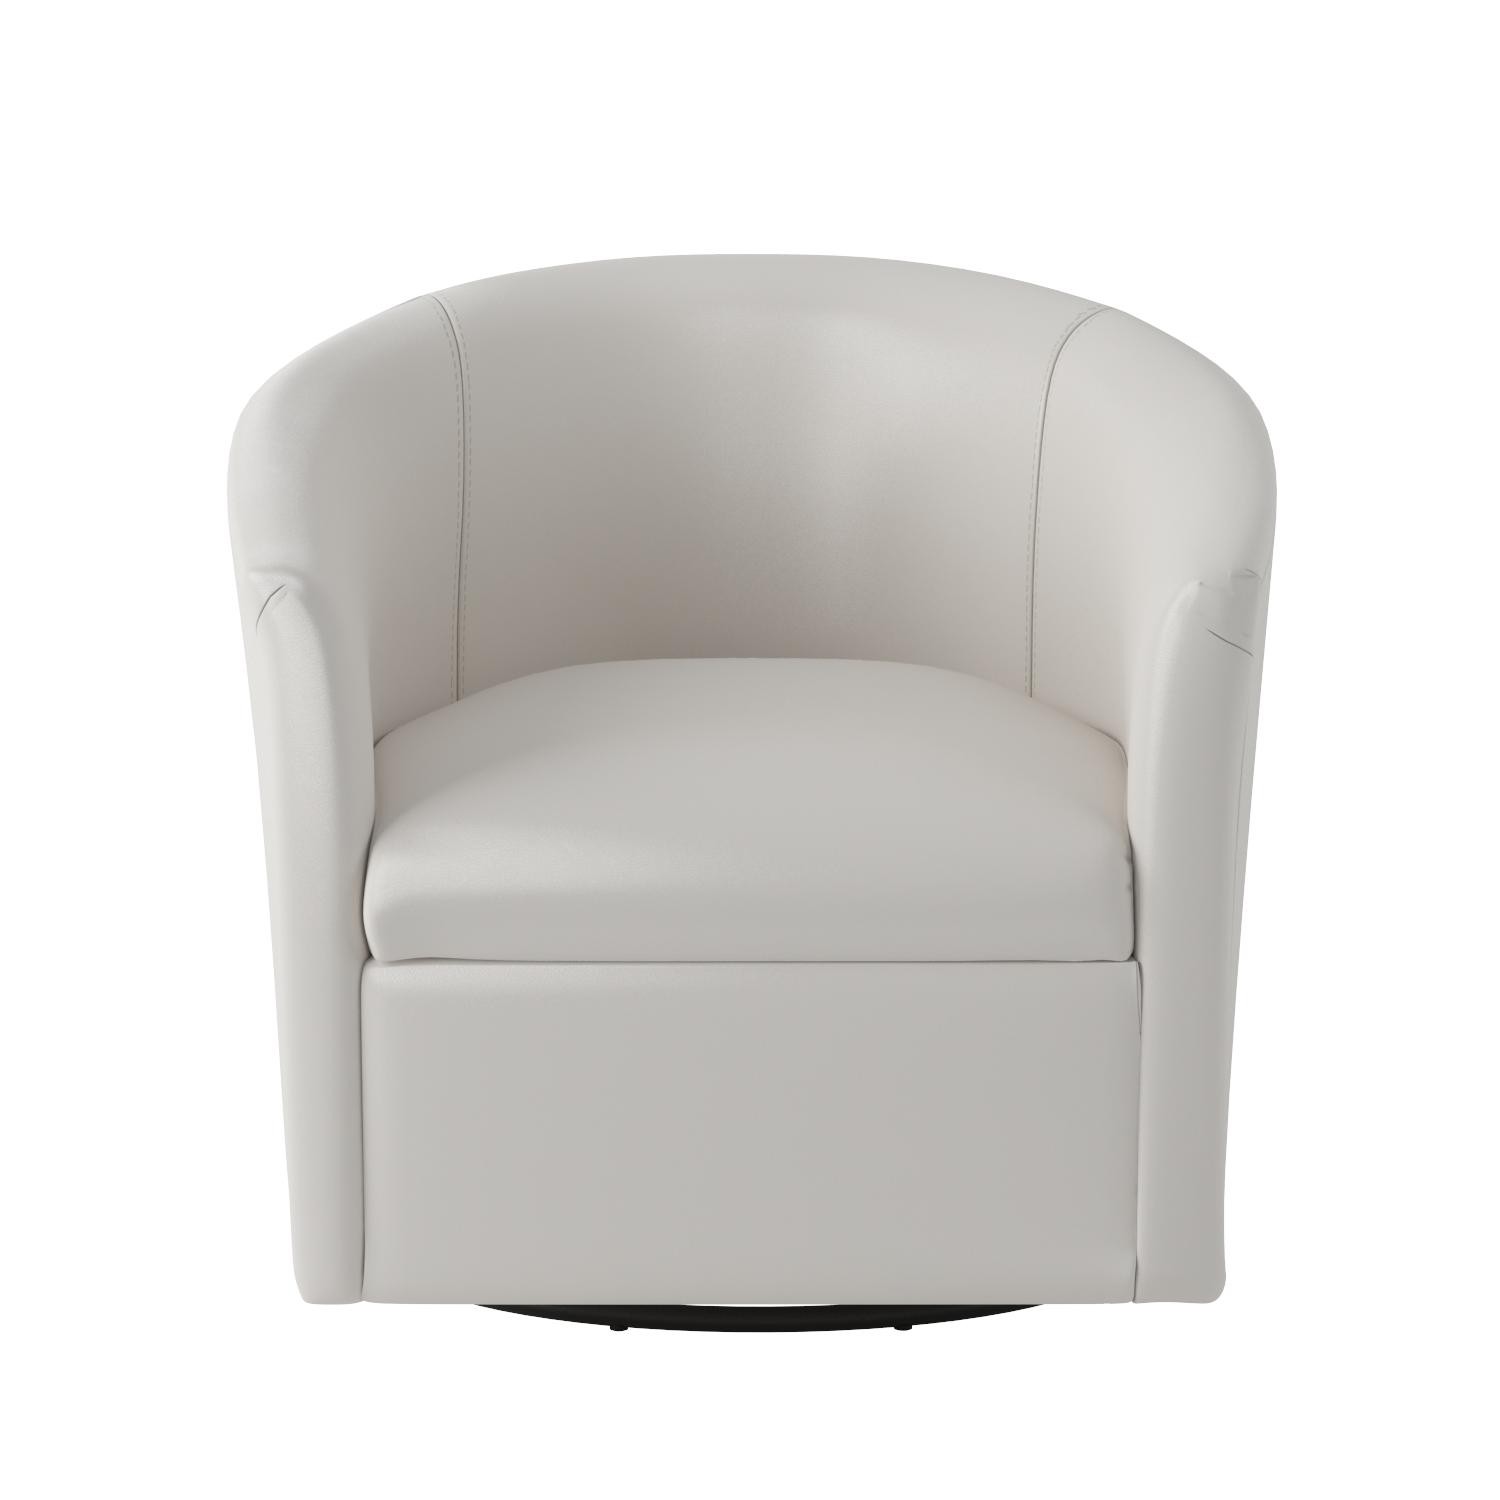 Comfort Pointe Draper Swivel Chair